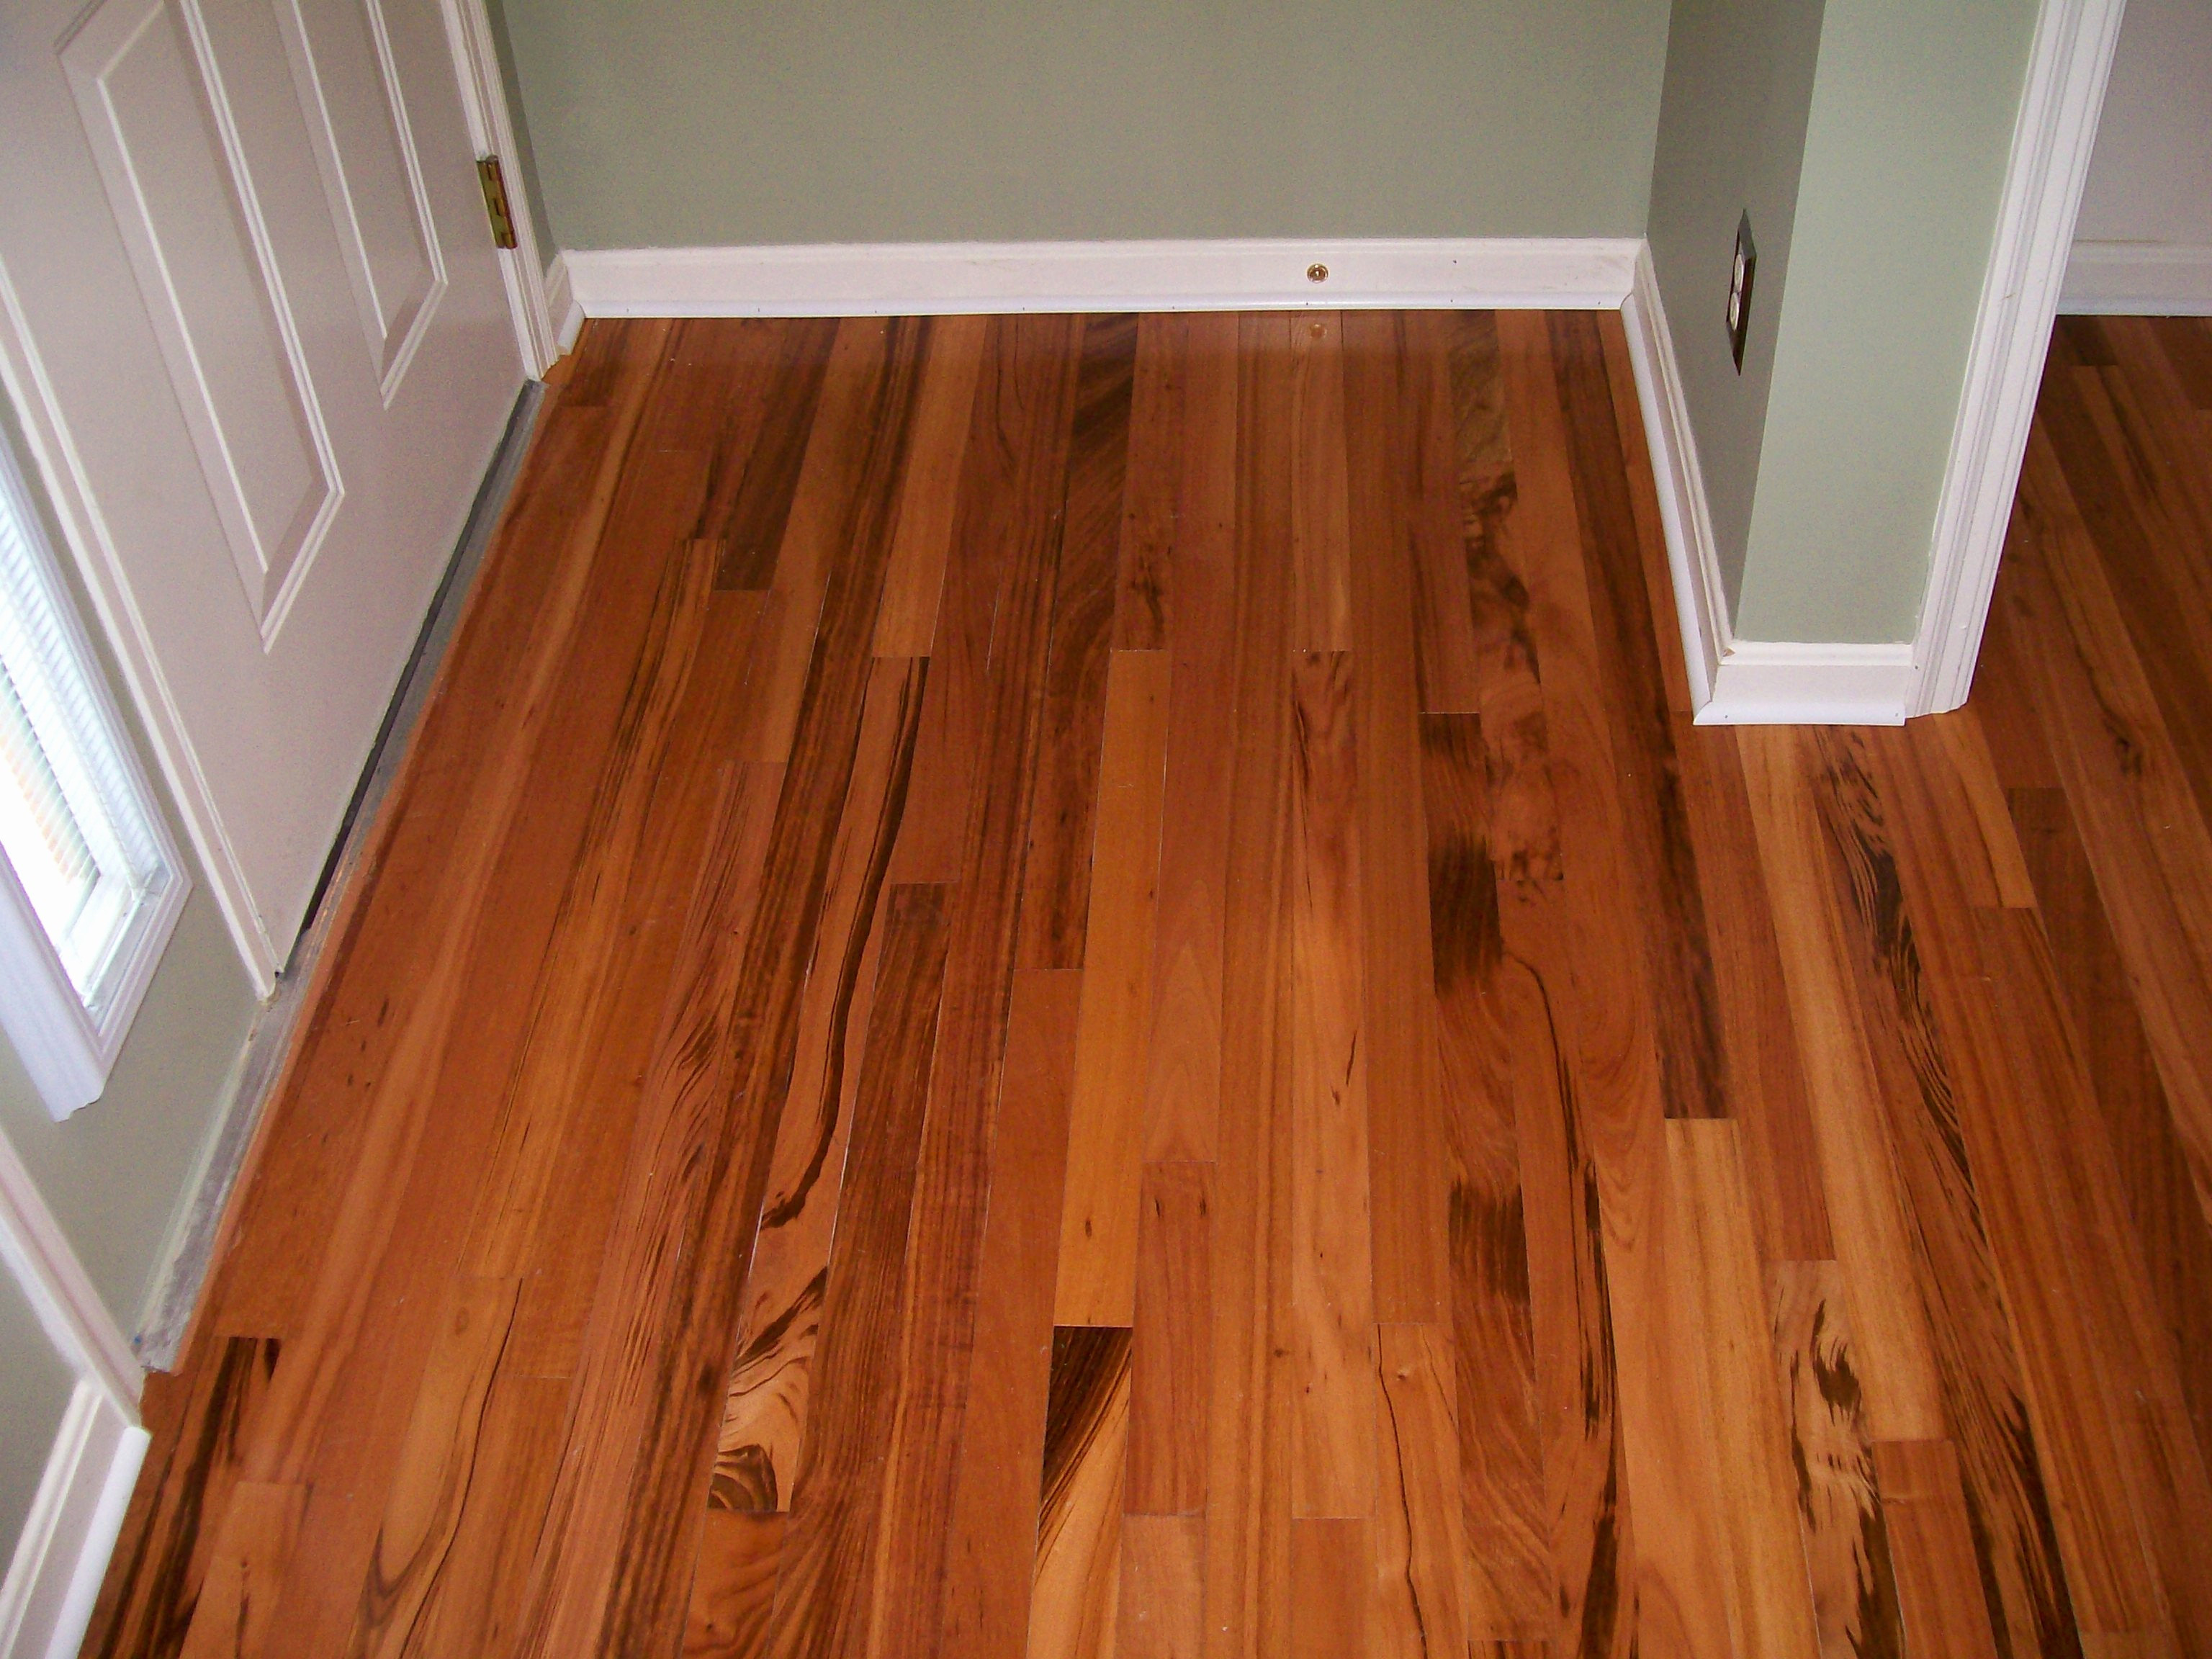 Bellawood Hardwood Floor Cleaner Home Depot Of 17 New Cost Of Hardwood Floor Installation Pics Dizpos Com with Regard to Cost Of Hardwood Floor Installation New 50 Fresh Estimated Cost Installing Hardwood Floors 50 Photos Of